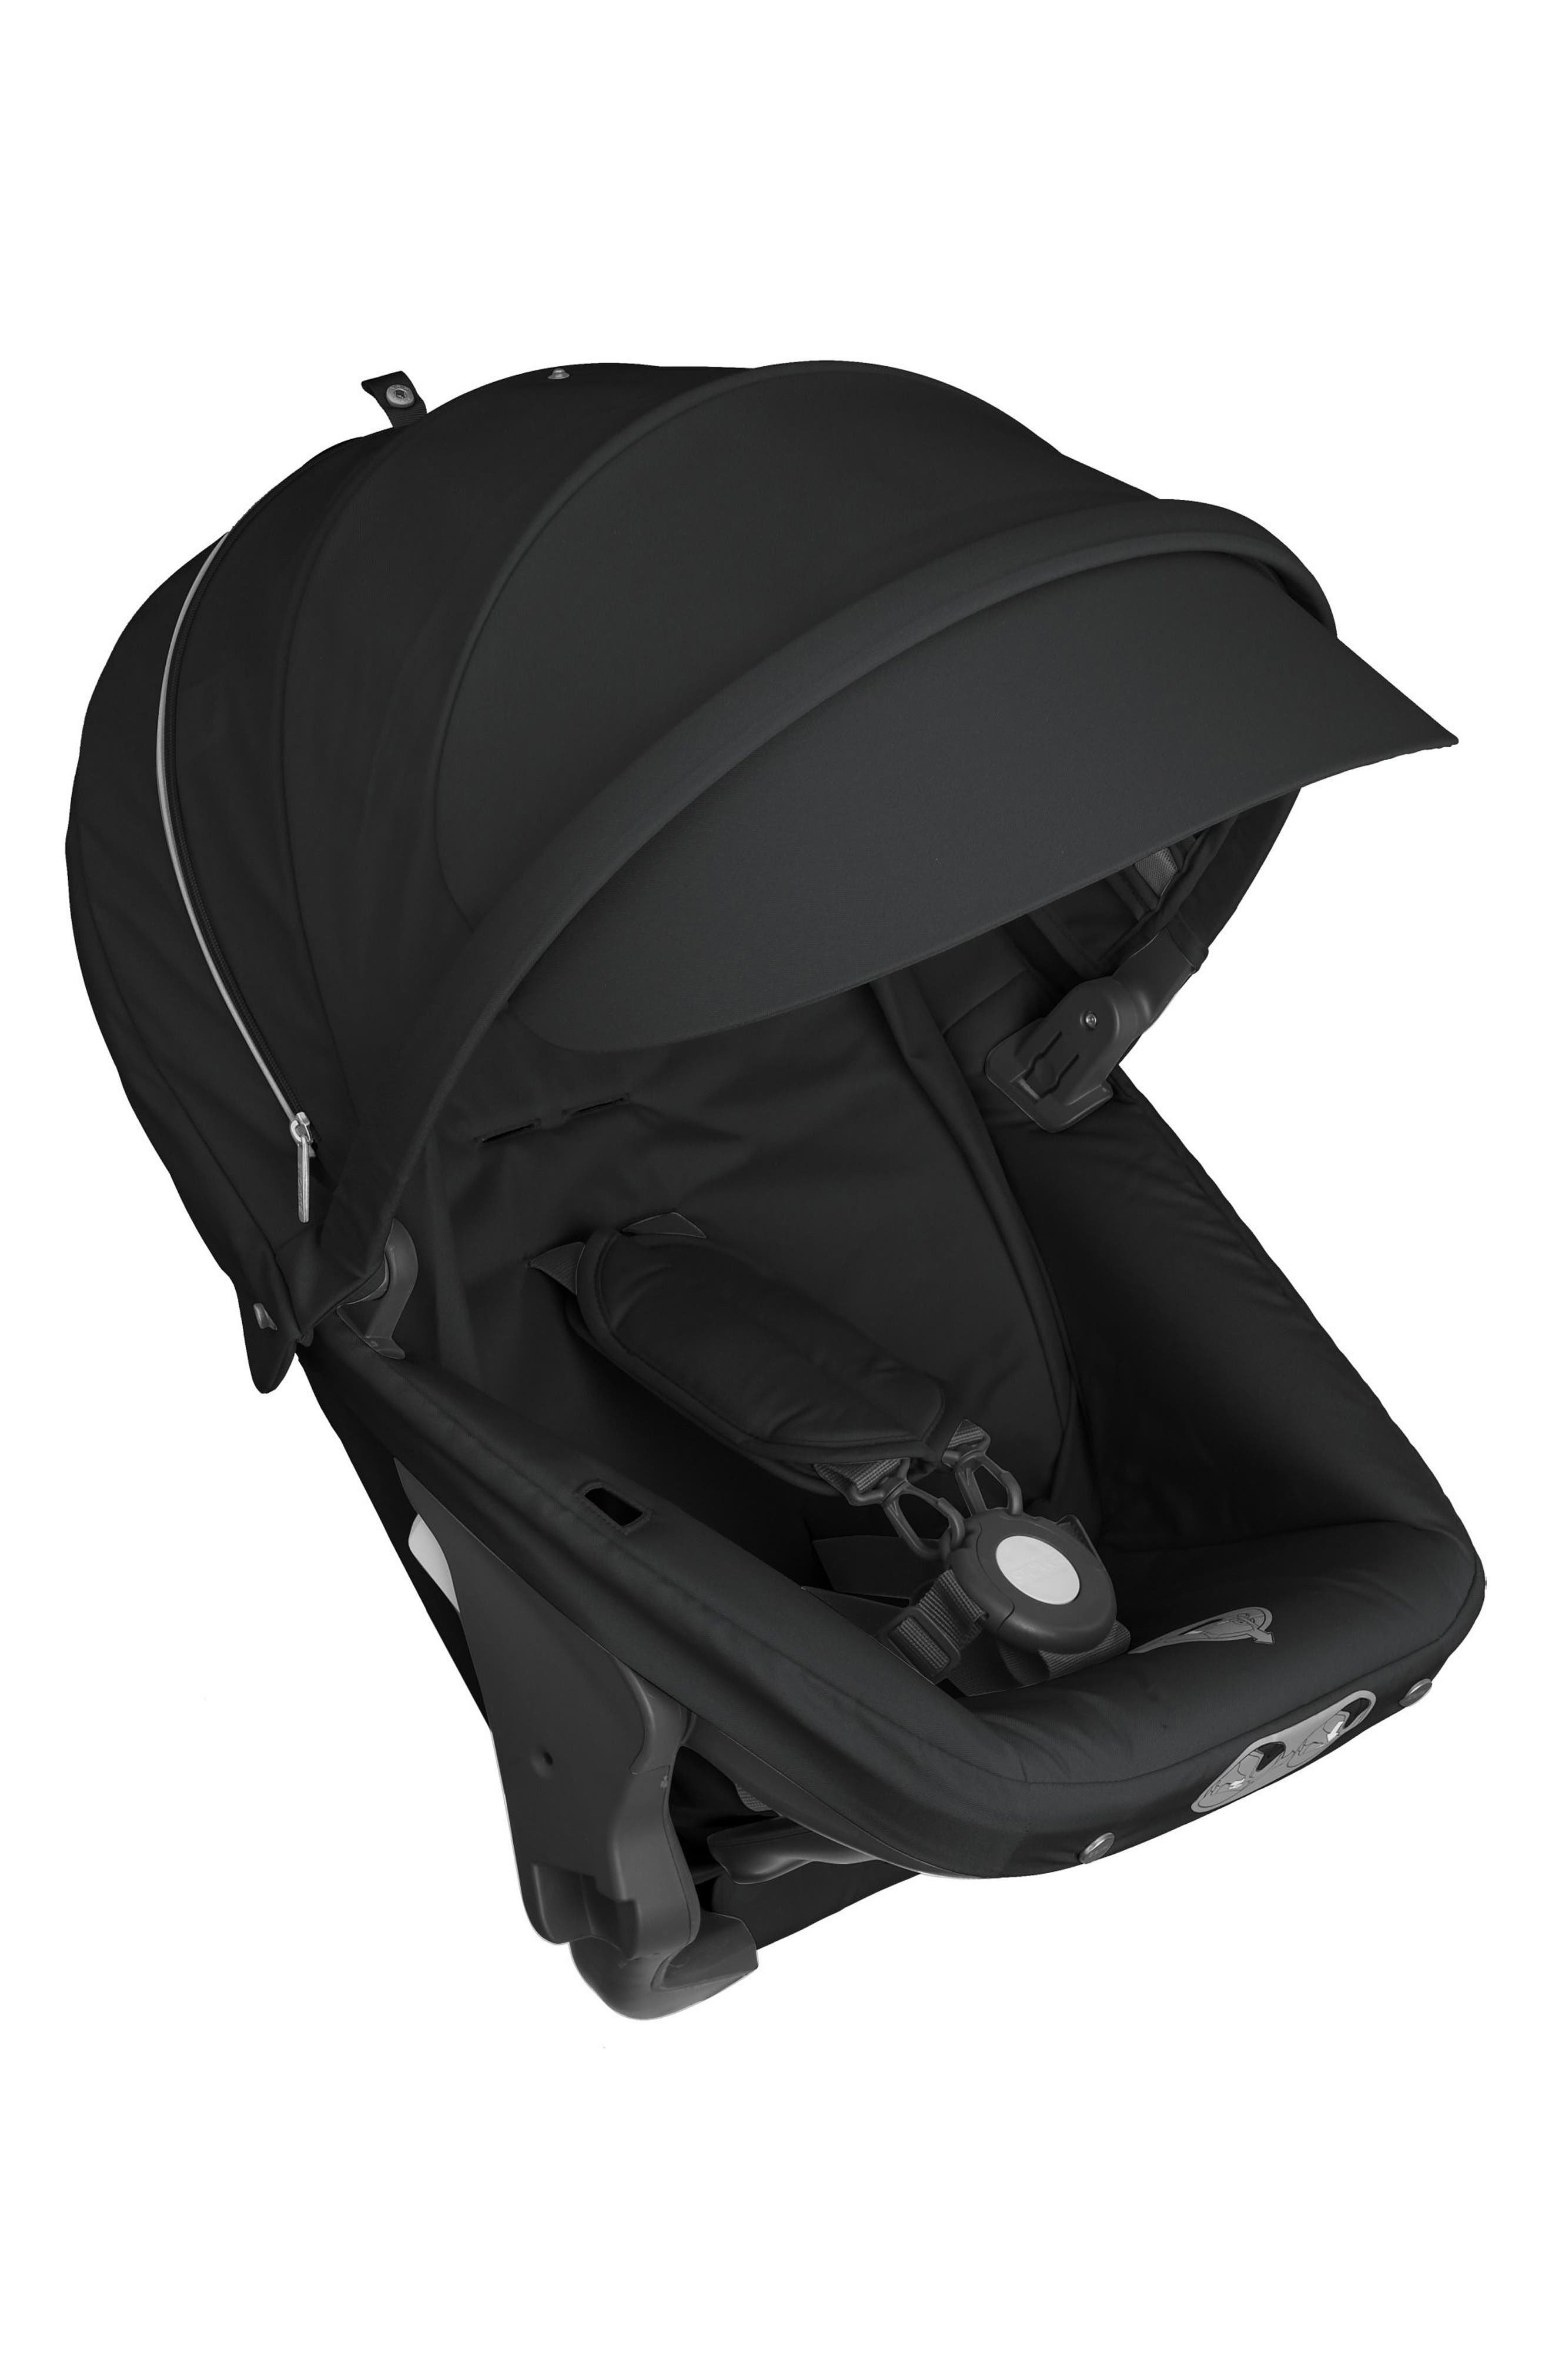 Scoot<sup>™</sup> Complete Stroller,                             Alternate thumbnail 15, color,                             Black